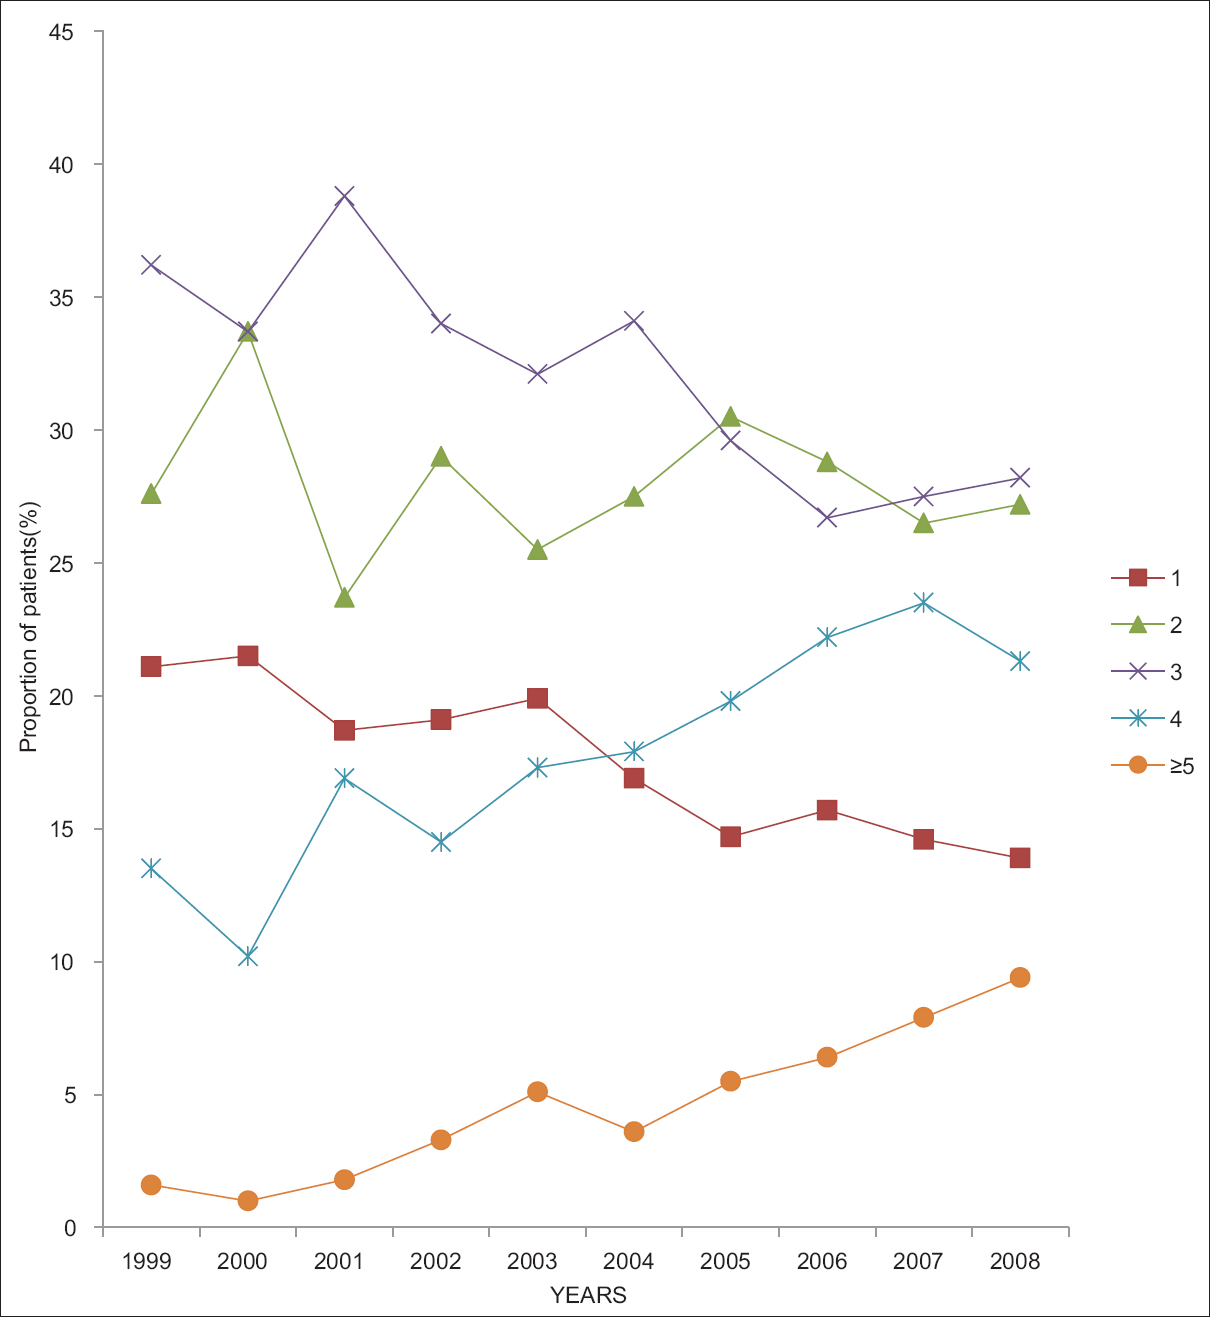 Figure 1: Proportion of the patients on varying numbers of antihypertensive medicines from 1999 to 2008 at the consultant outpatient department